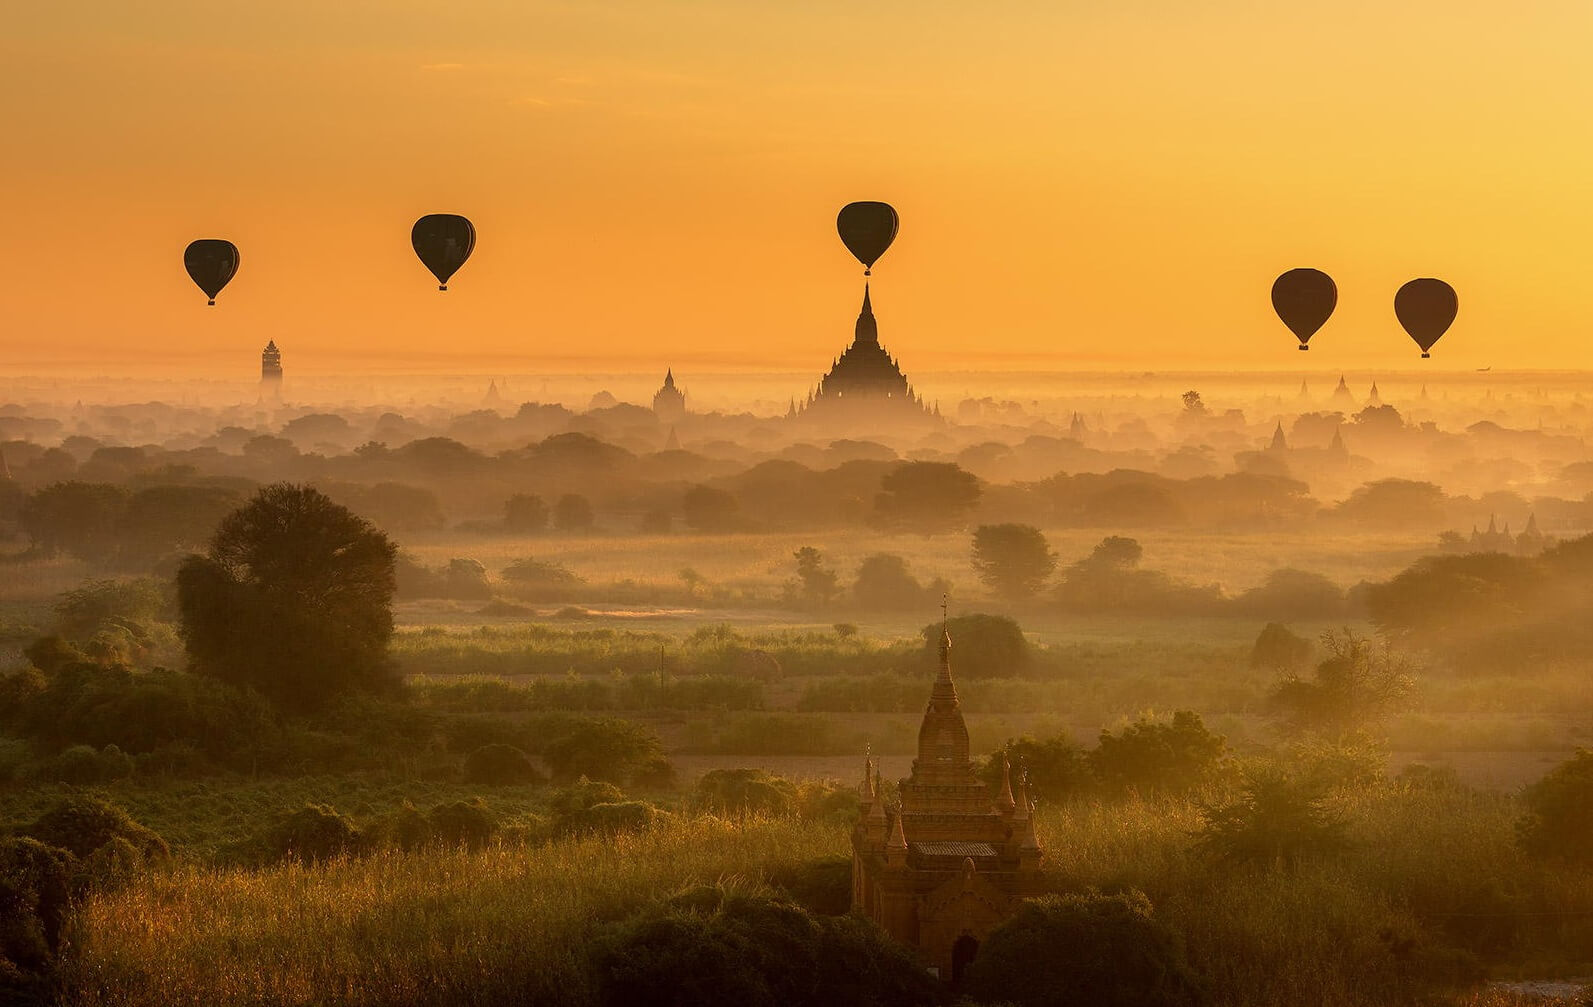 Great destinations come together as Burma is the center of your next tour holiday. Beijing to Yangon is great tour option.